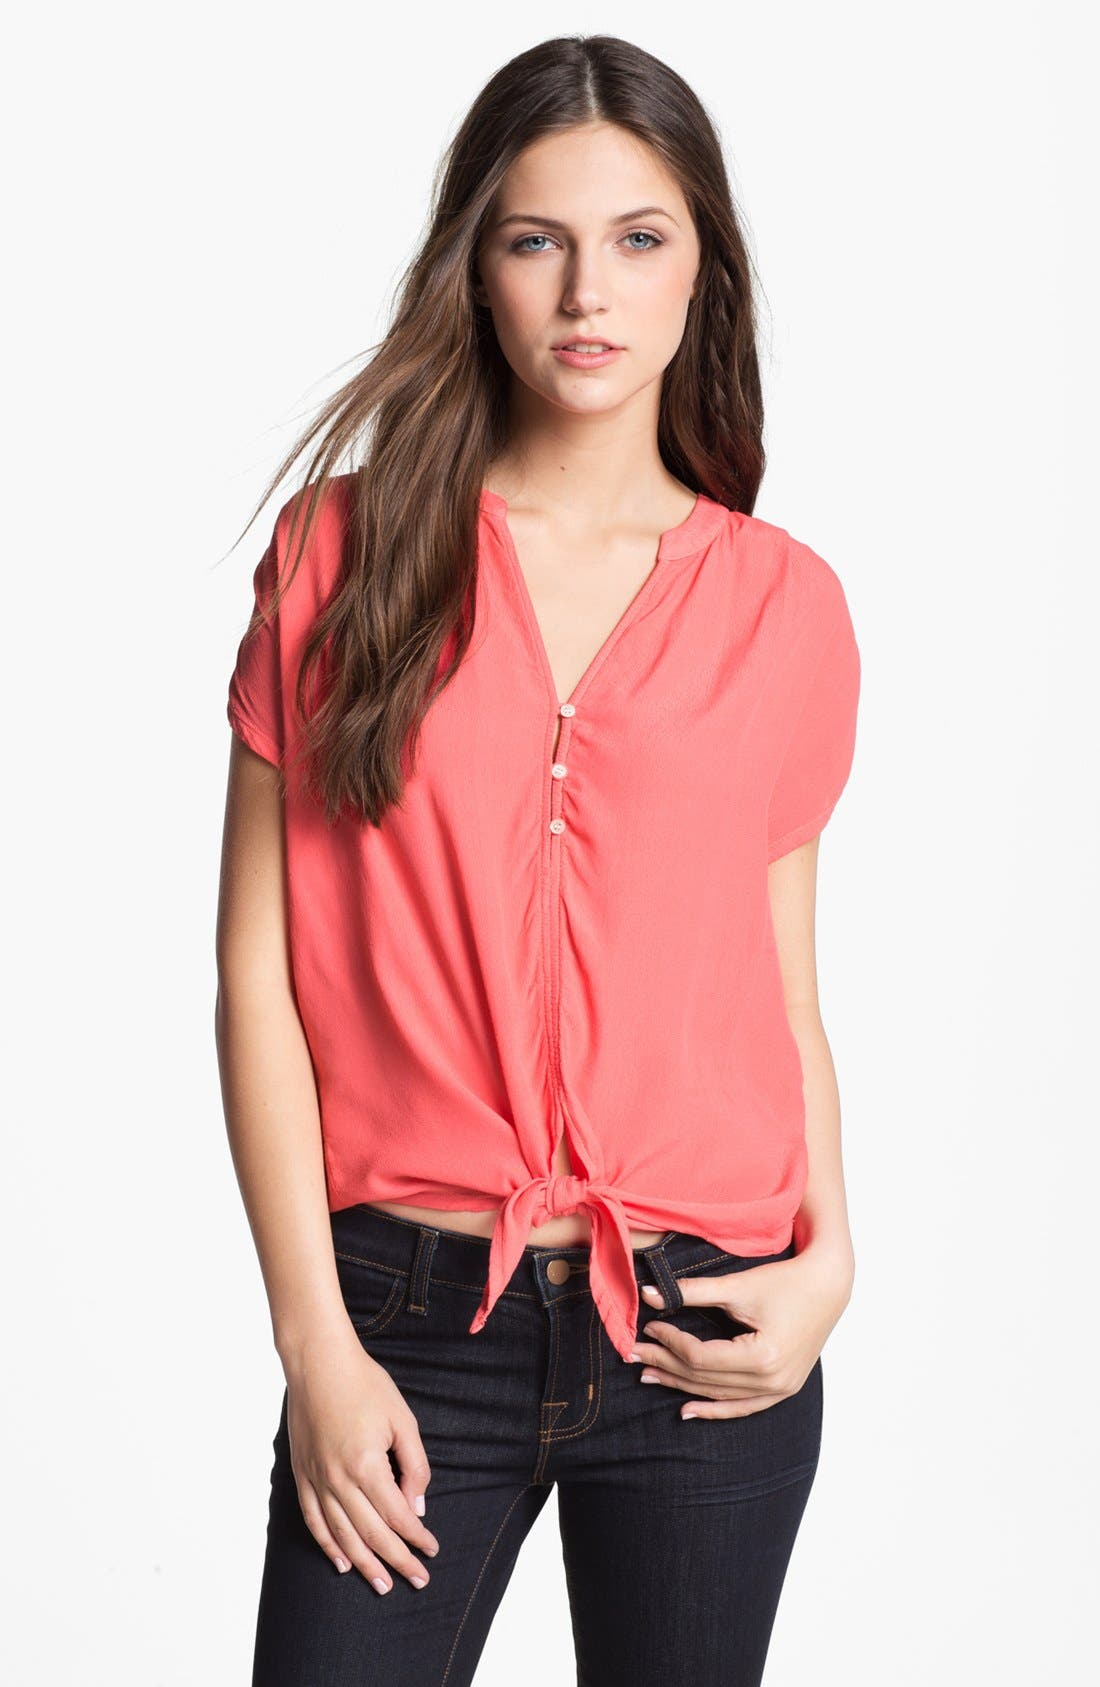 Alternate Image 1 Selected - Soft Joie 'Chally' Tie Front Top